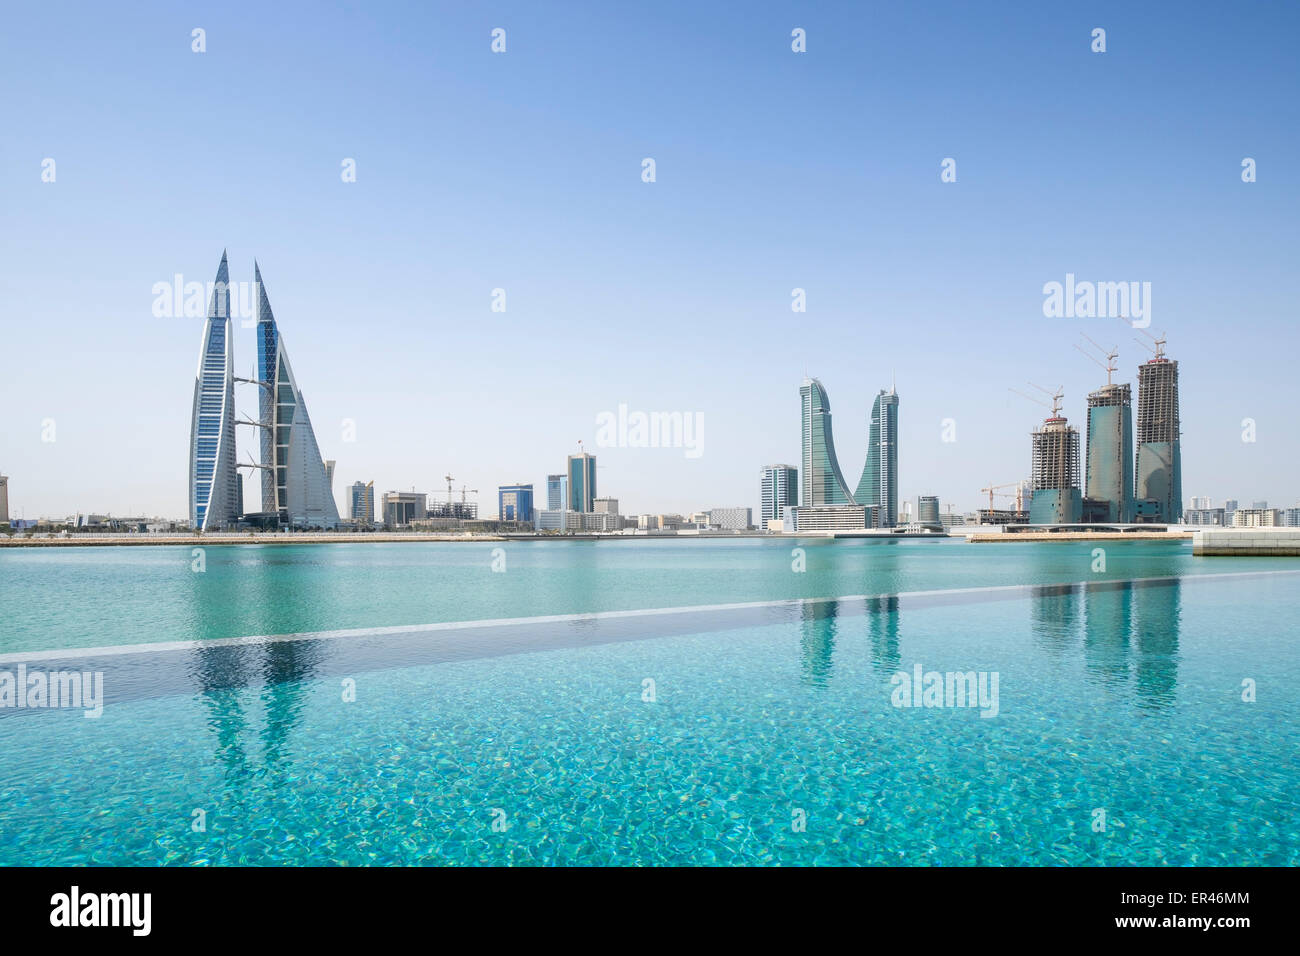 what are bahrain bays four foundational philosophies The analysis report of bahrain bay case bahrain bay, which aims at being a presented collection of waterfront residential, retail and commercial development, representing a unique new focal point in bahrain, is a joint venture between arcapita bank and a bahrain-based investment group.